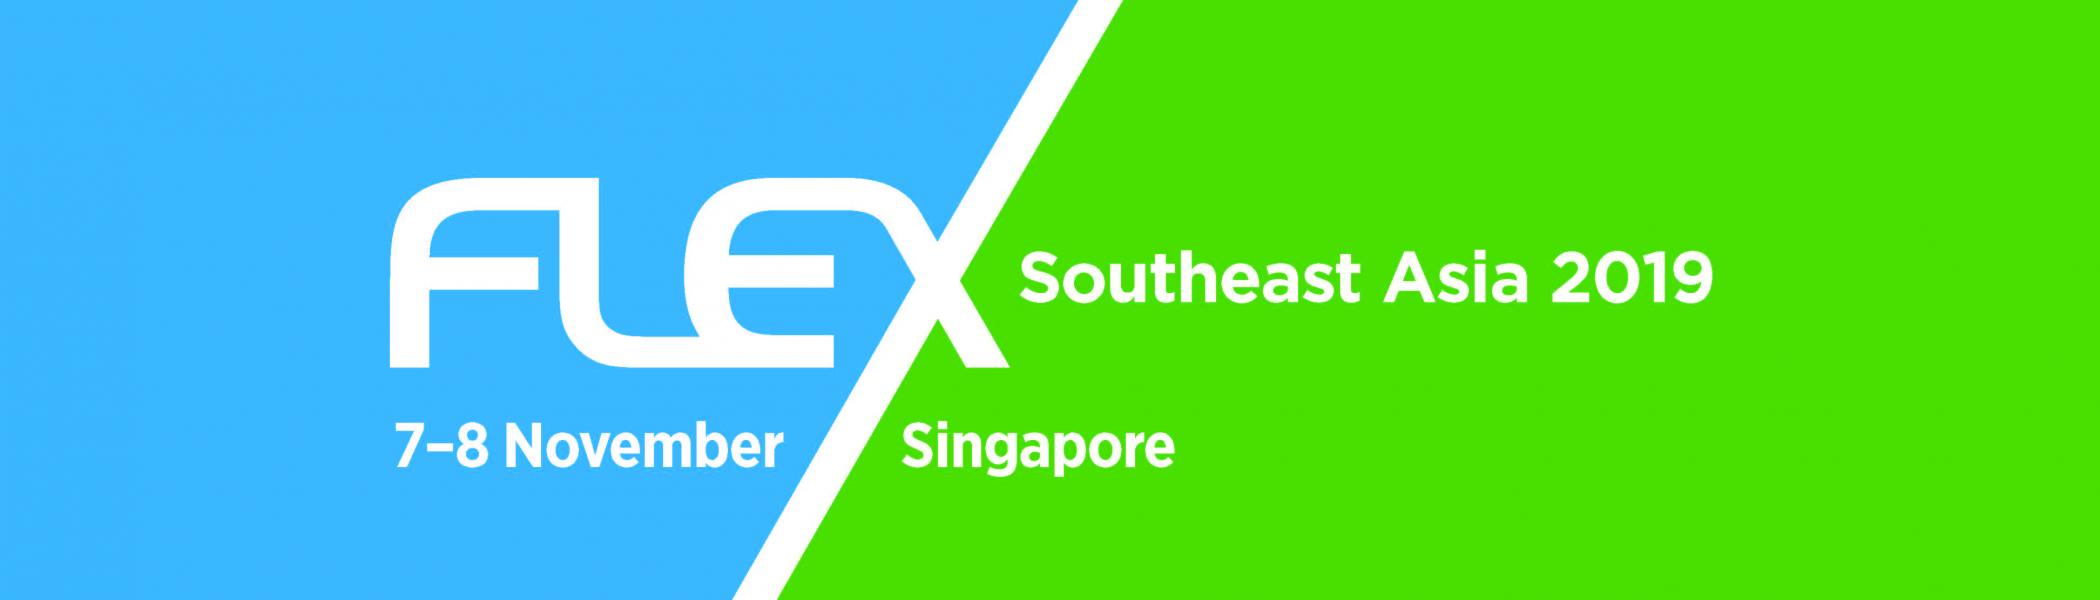 FLEX Southeast Asia 2019